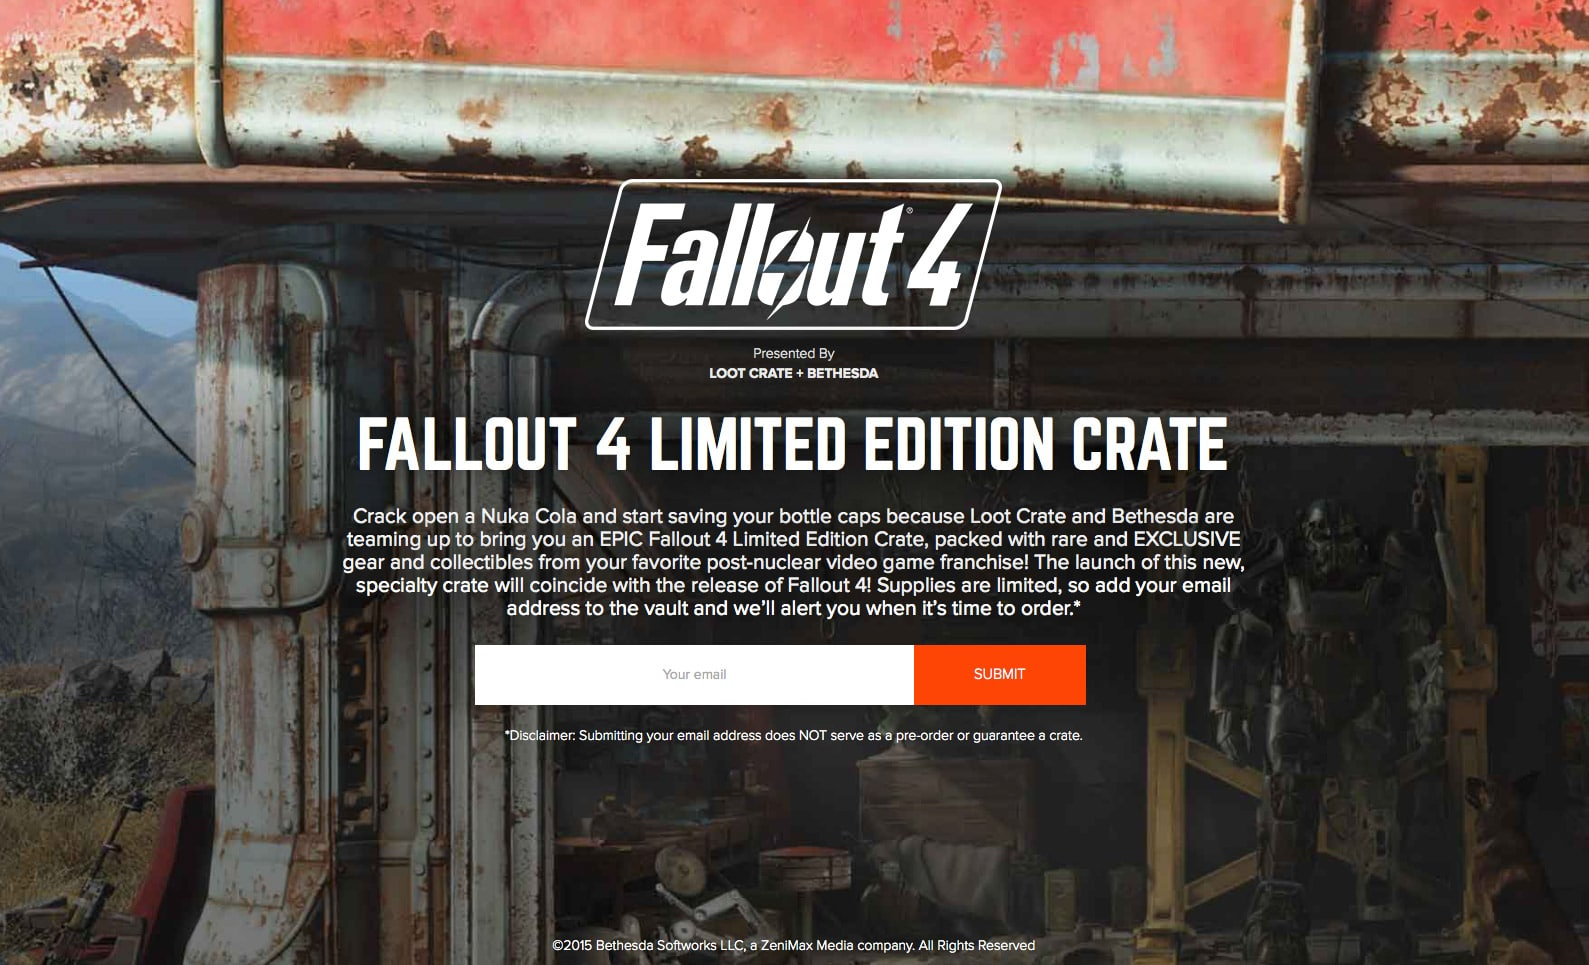 Loot Crate Fallout 4 Limited Edition Crate